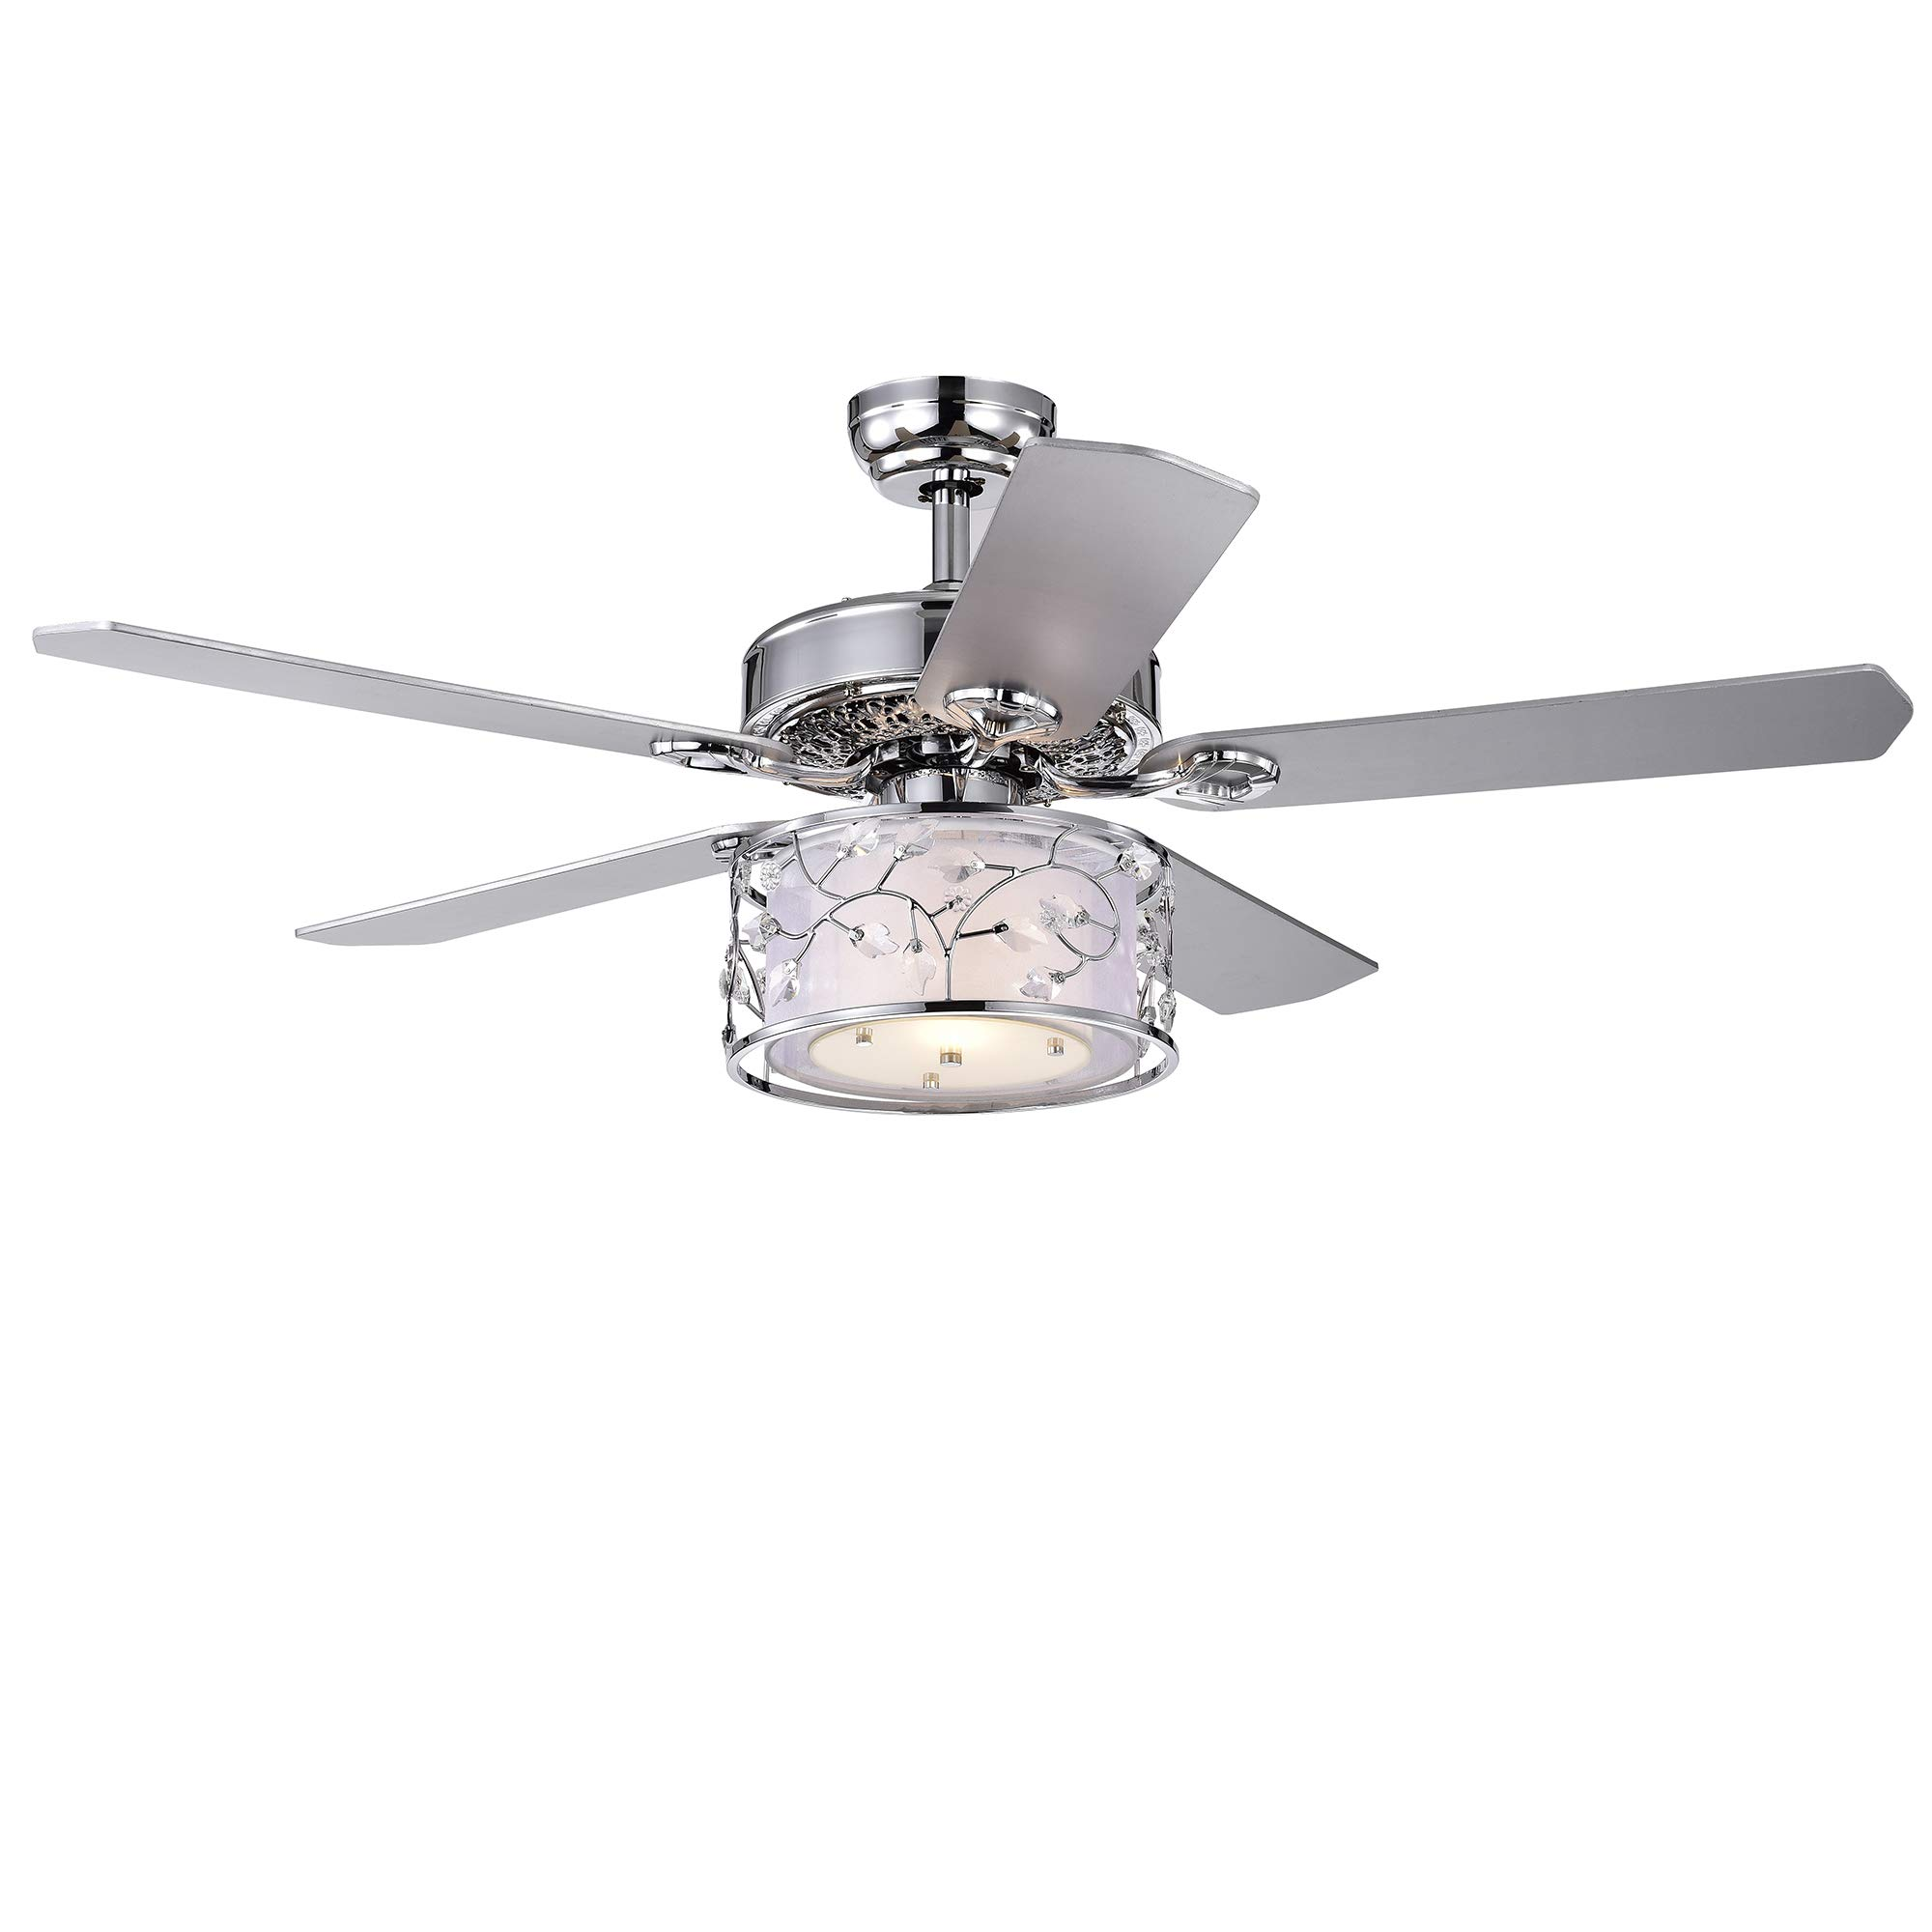 Warehouse of Tiffany CFL-8403REMO/CH Swerl 52-inch 1 Multi-Layered Shade (Includes Remote and Light Kit) Ceiling Fan, Silver